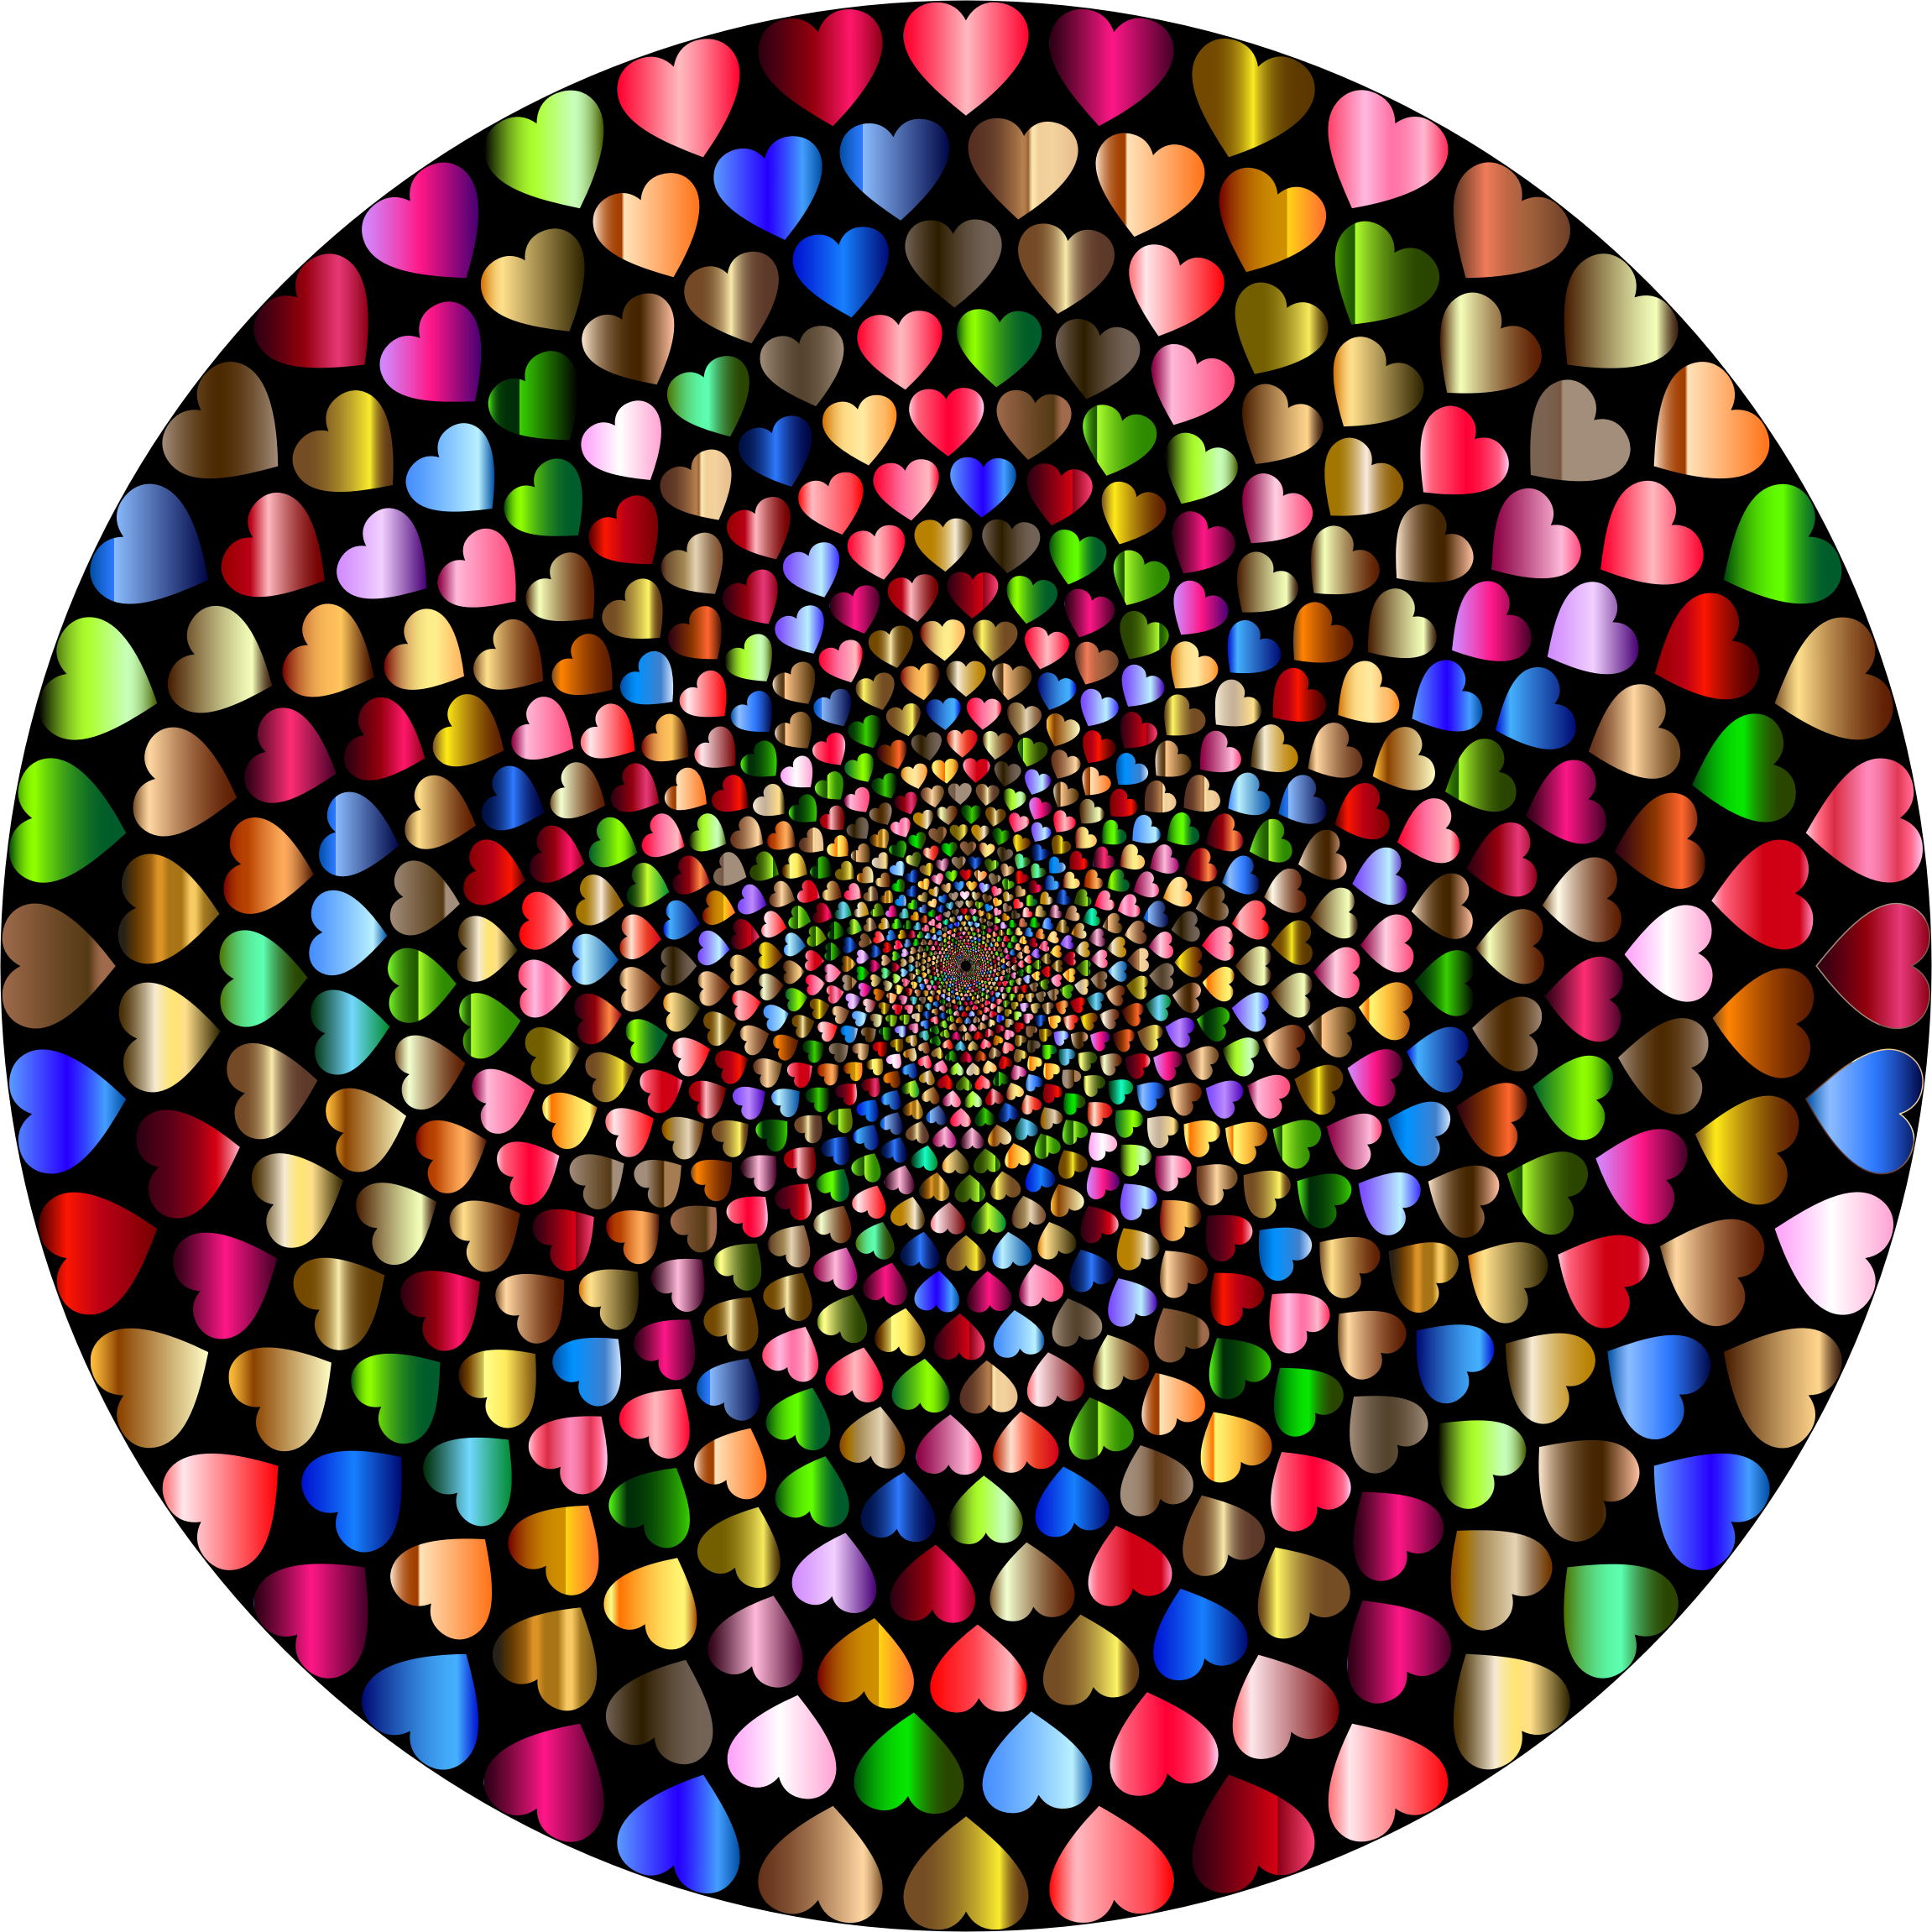 Colorful Hearts Vortex 12 Variation 2 With Background by GDJ